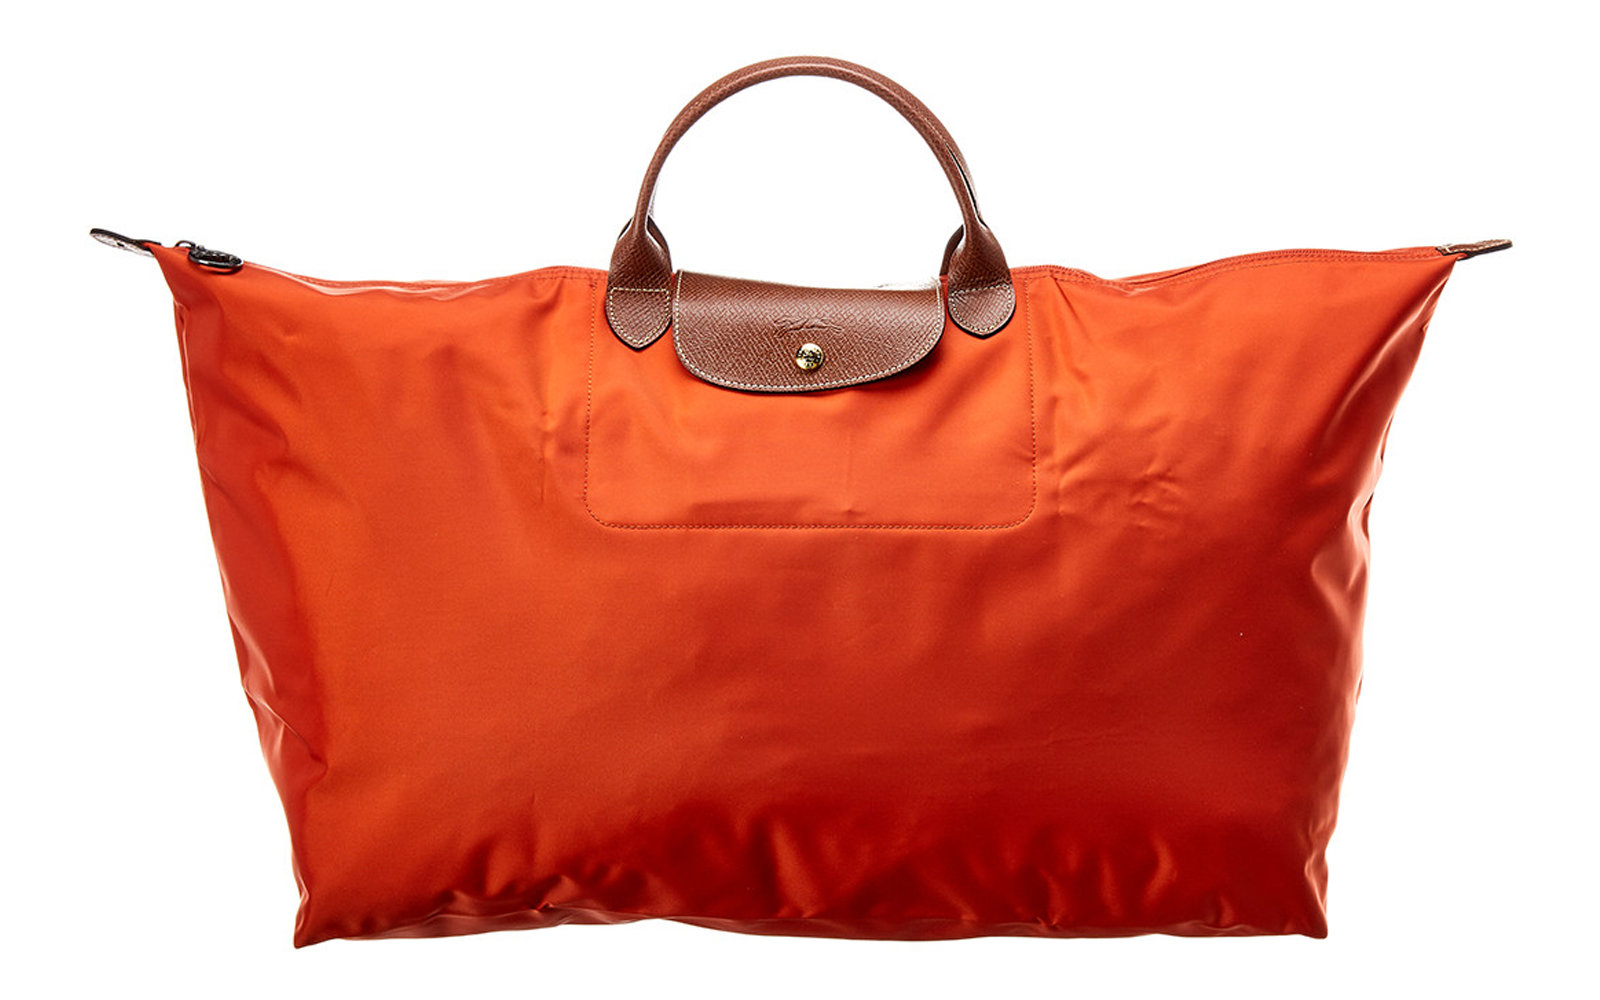 Longchamp Le Pliage XL Nylon Travel Tote in Red